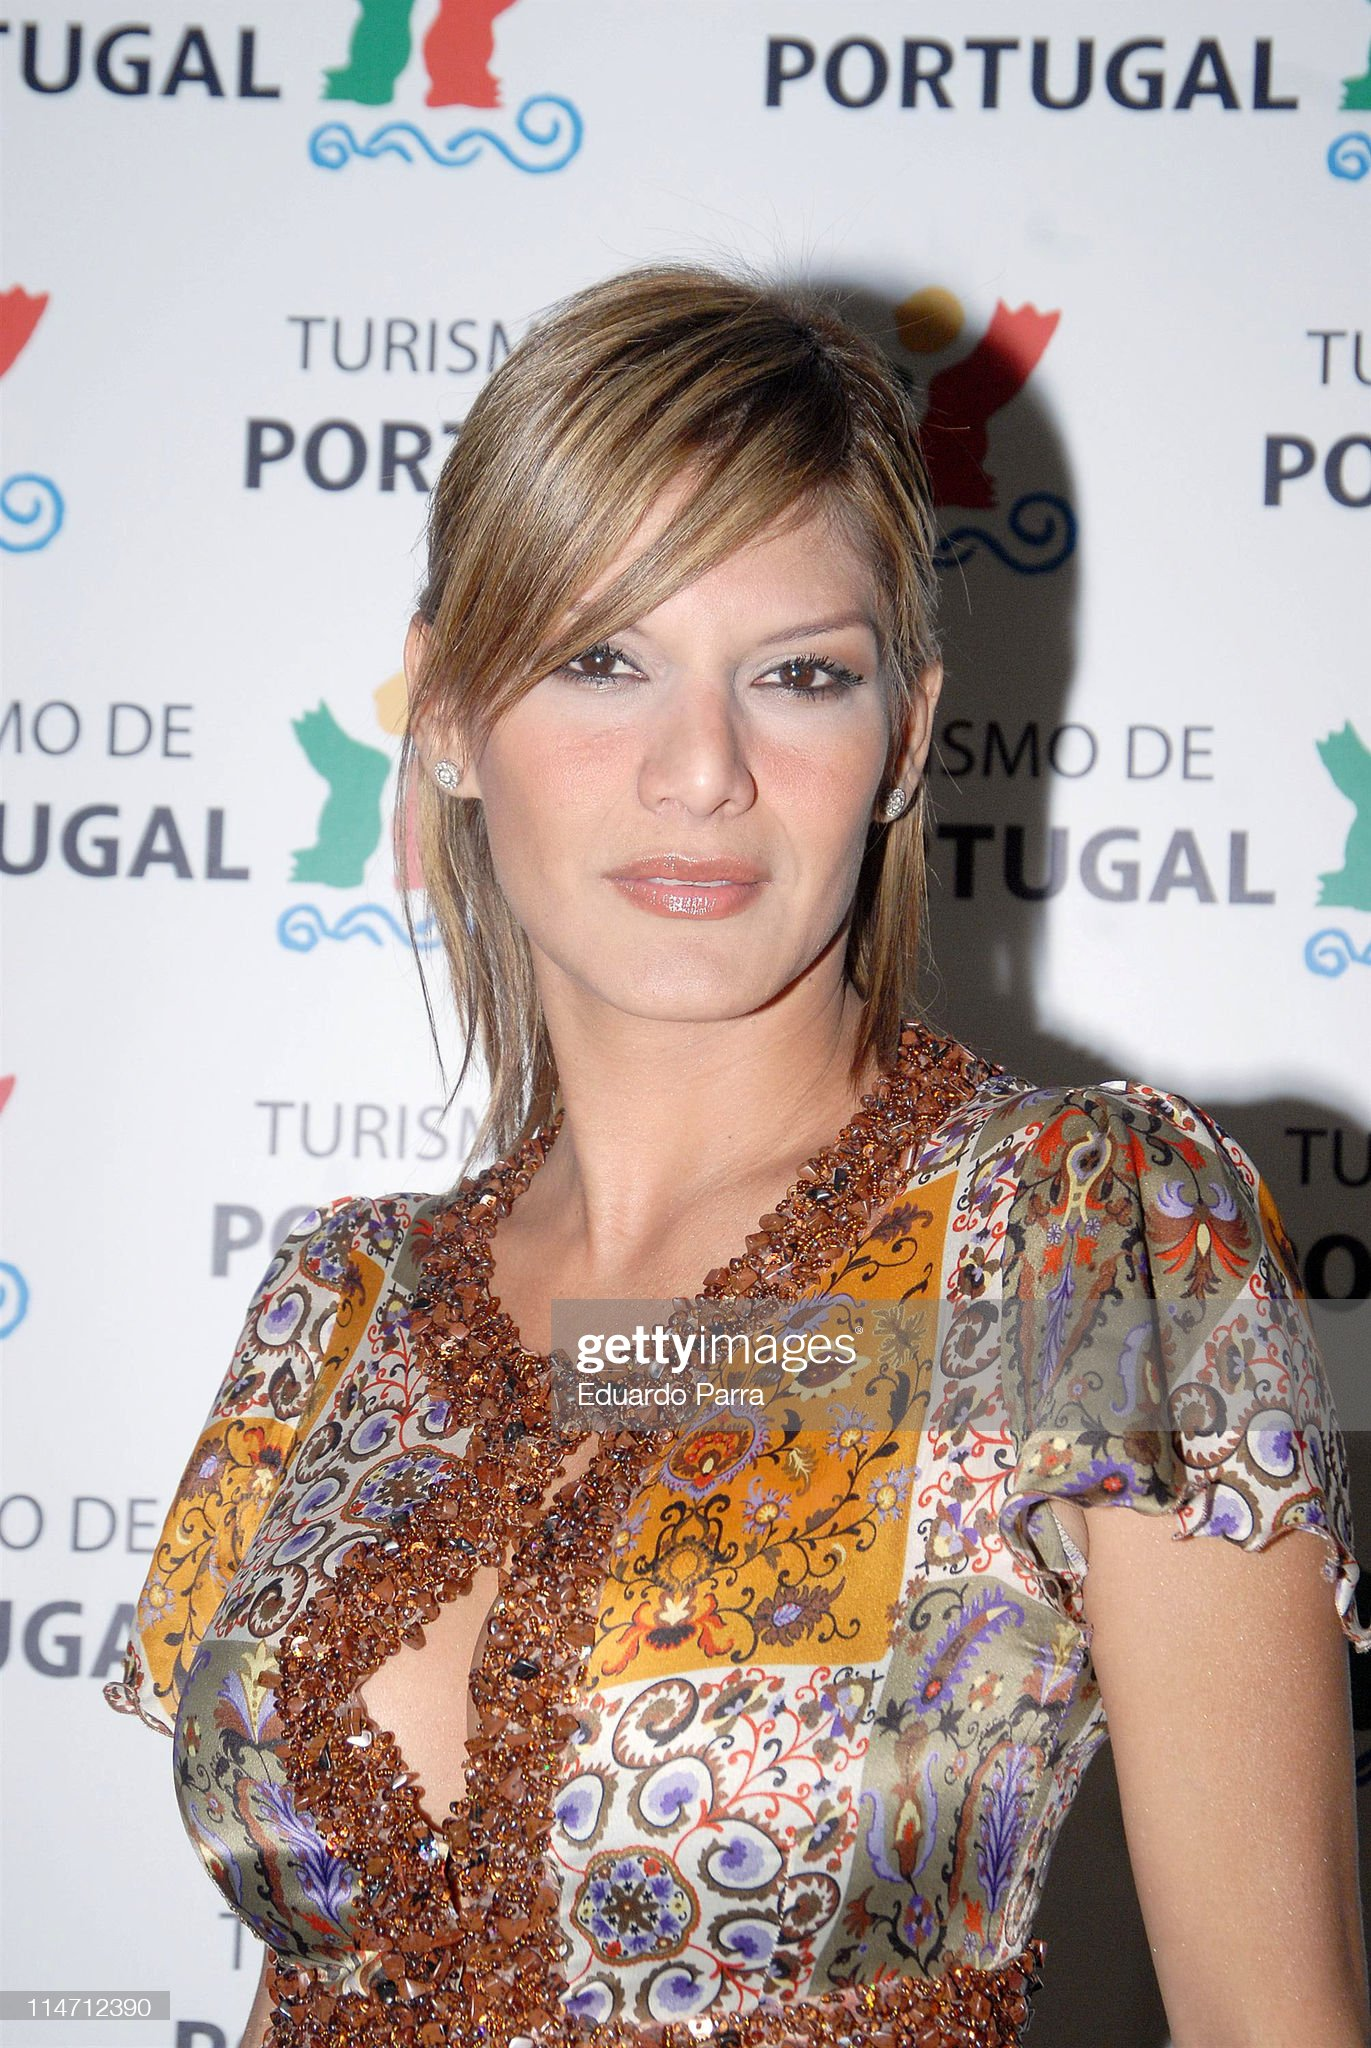 ¿Cuánto mide Ivonne Reyes? - Altura Ivonne-reyes-during-portugal-tourism-party-february-1-2007-at-nueva-picture-id114712390?s=2048x2048